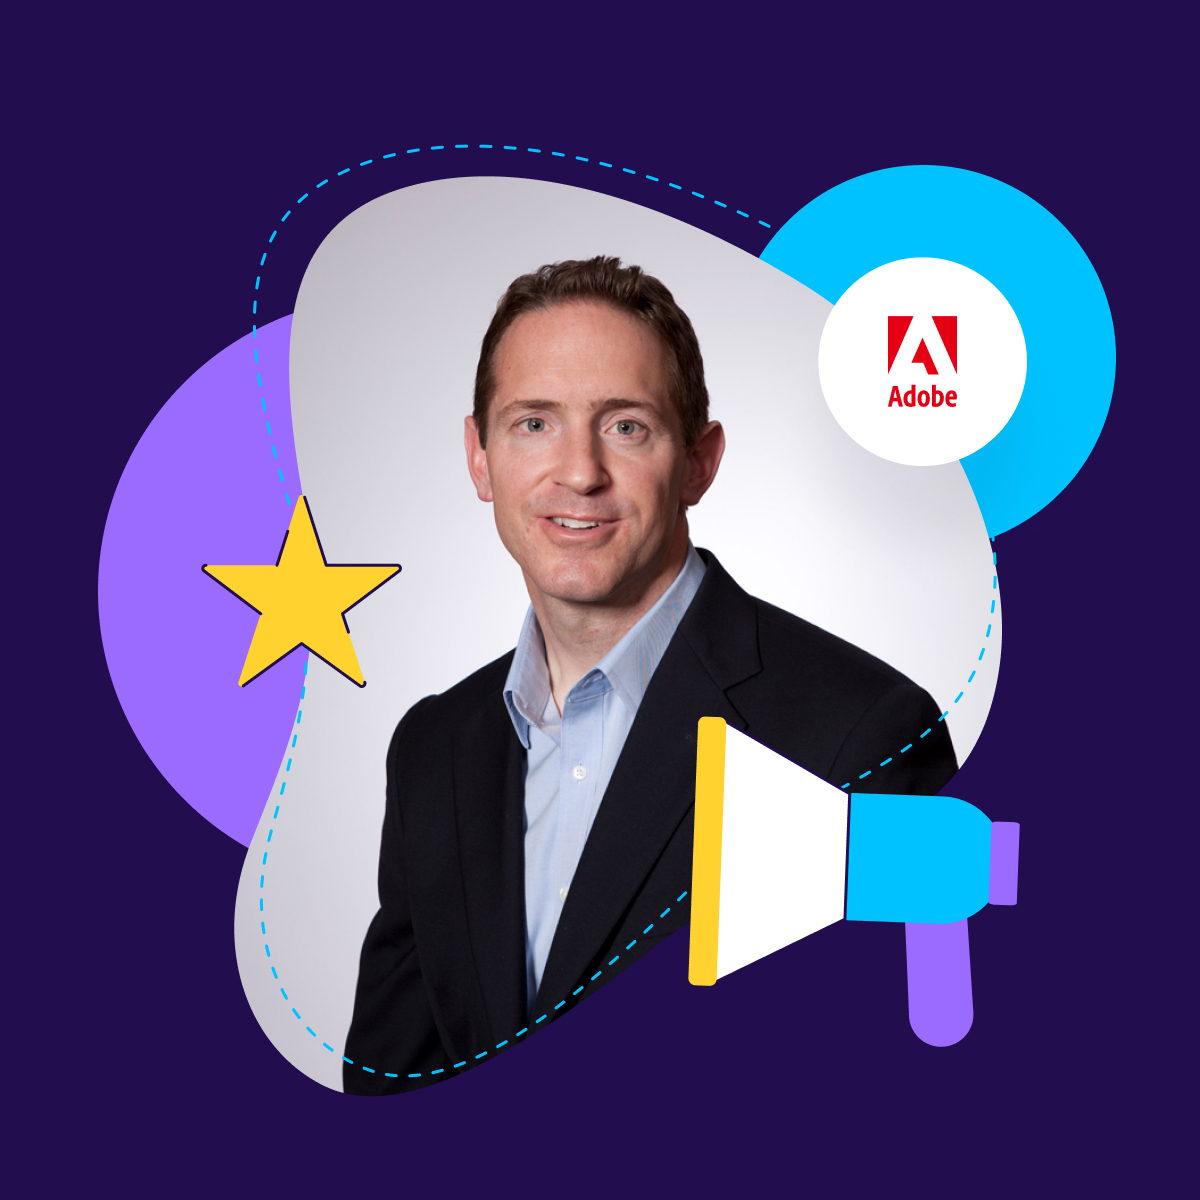 adobe and appsflyer